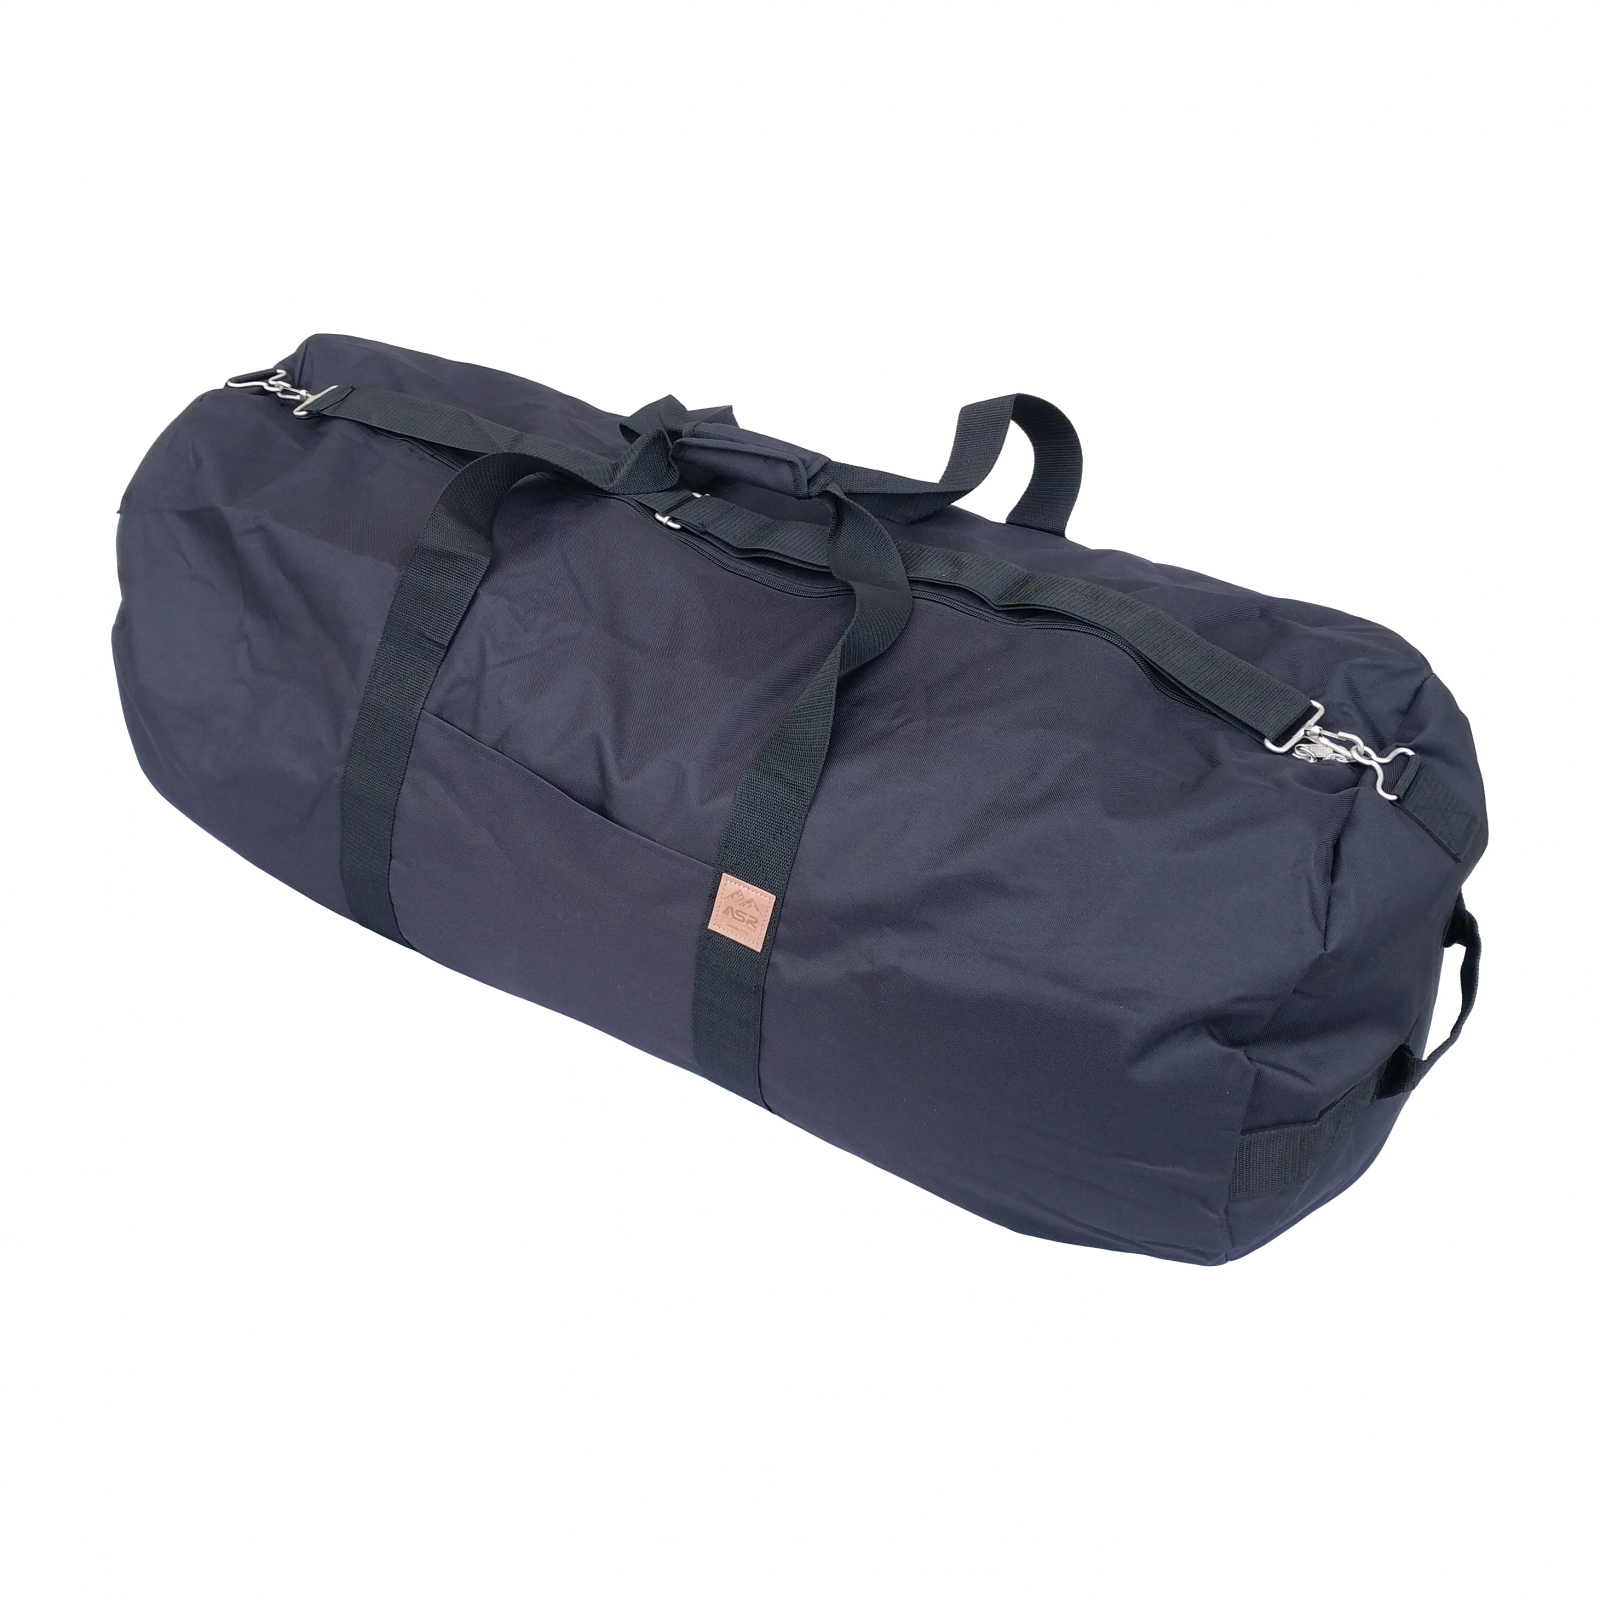 ASR Outdoor Classic Round Duffel Bag 40 Inch Matte Black